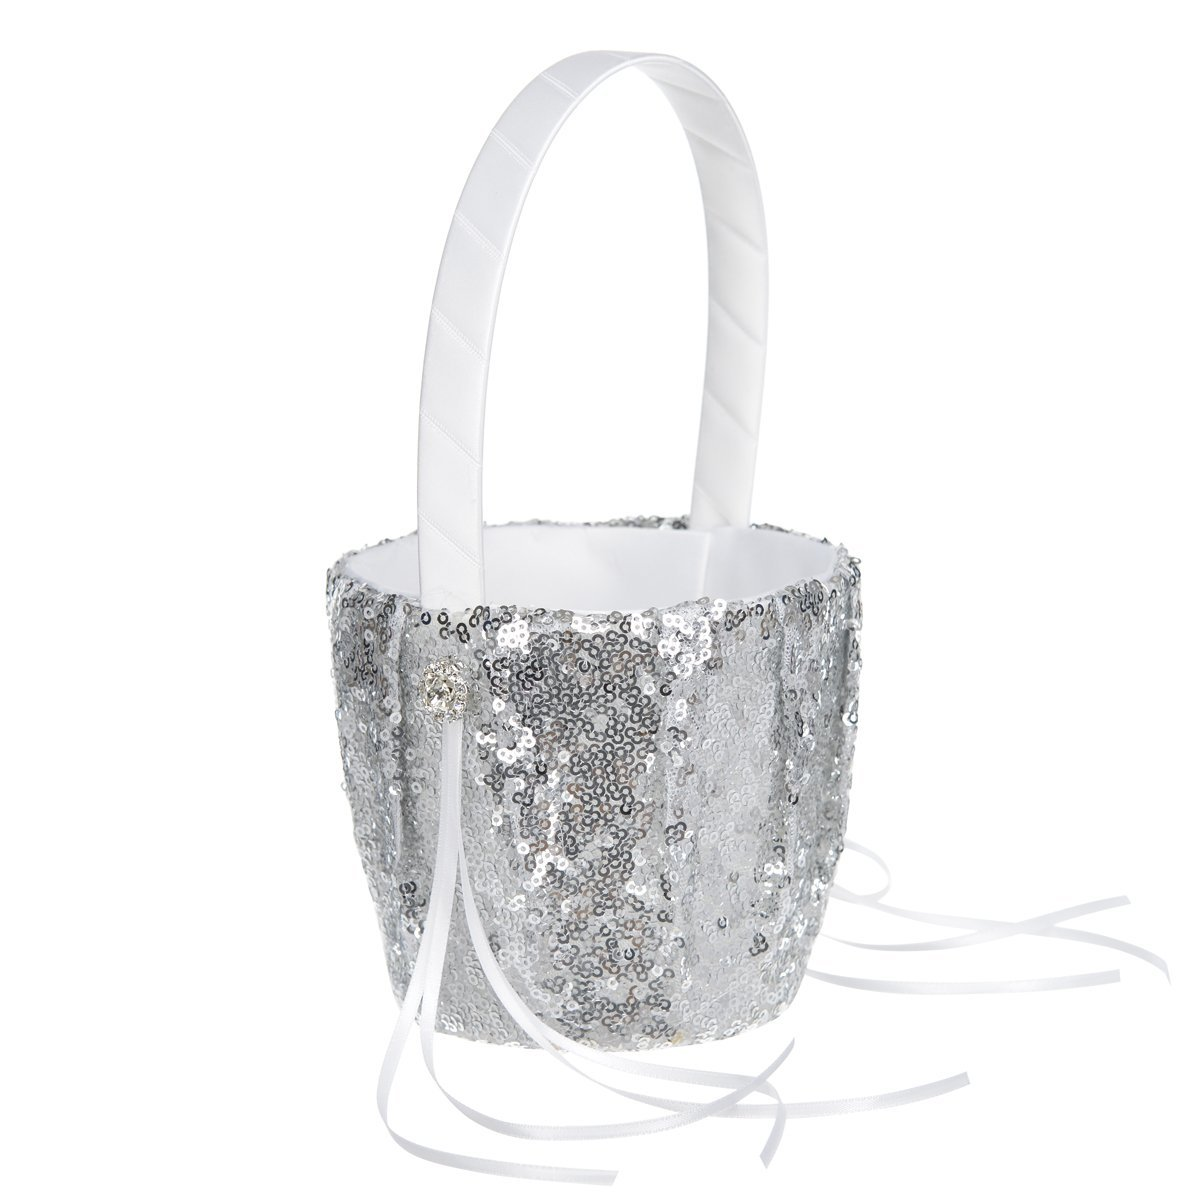 Remedios 5 Colors Fashion Sequin Wedding Flower Girl Basket Flower Basket, Green LWCAHL1605CP1S165